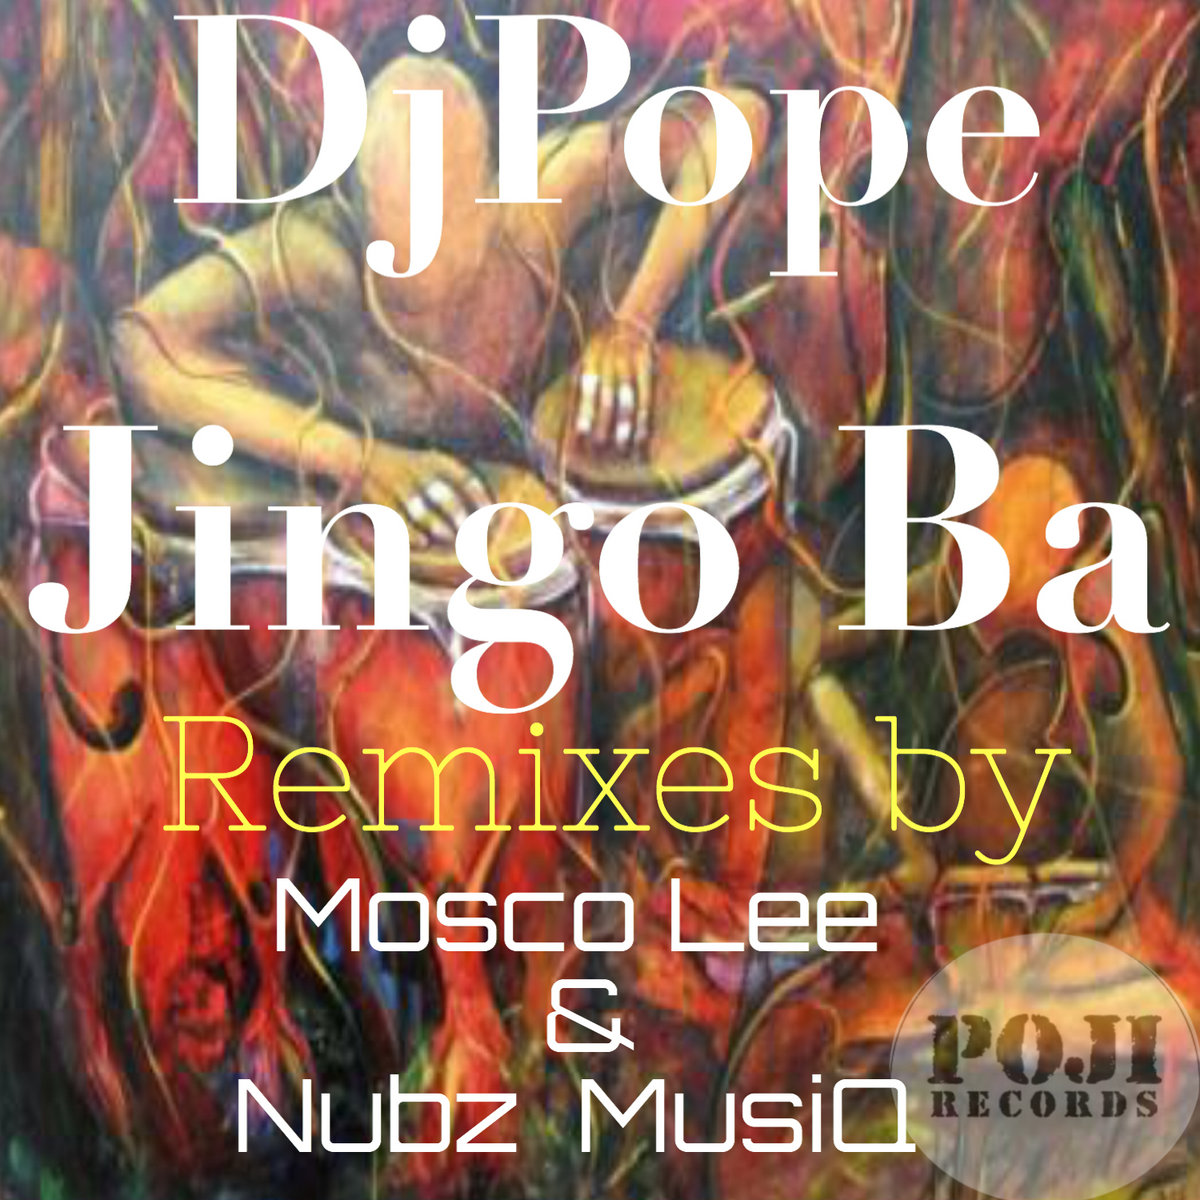 House music forever djpope jingo ba mosco lee nubz for House music acapella